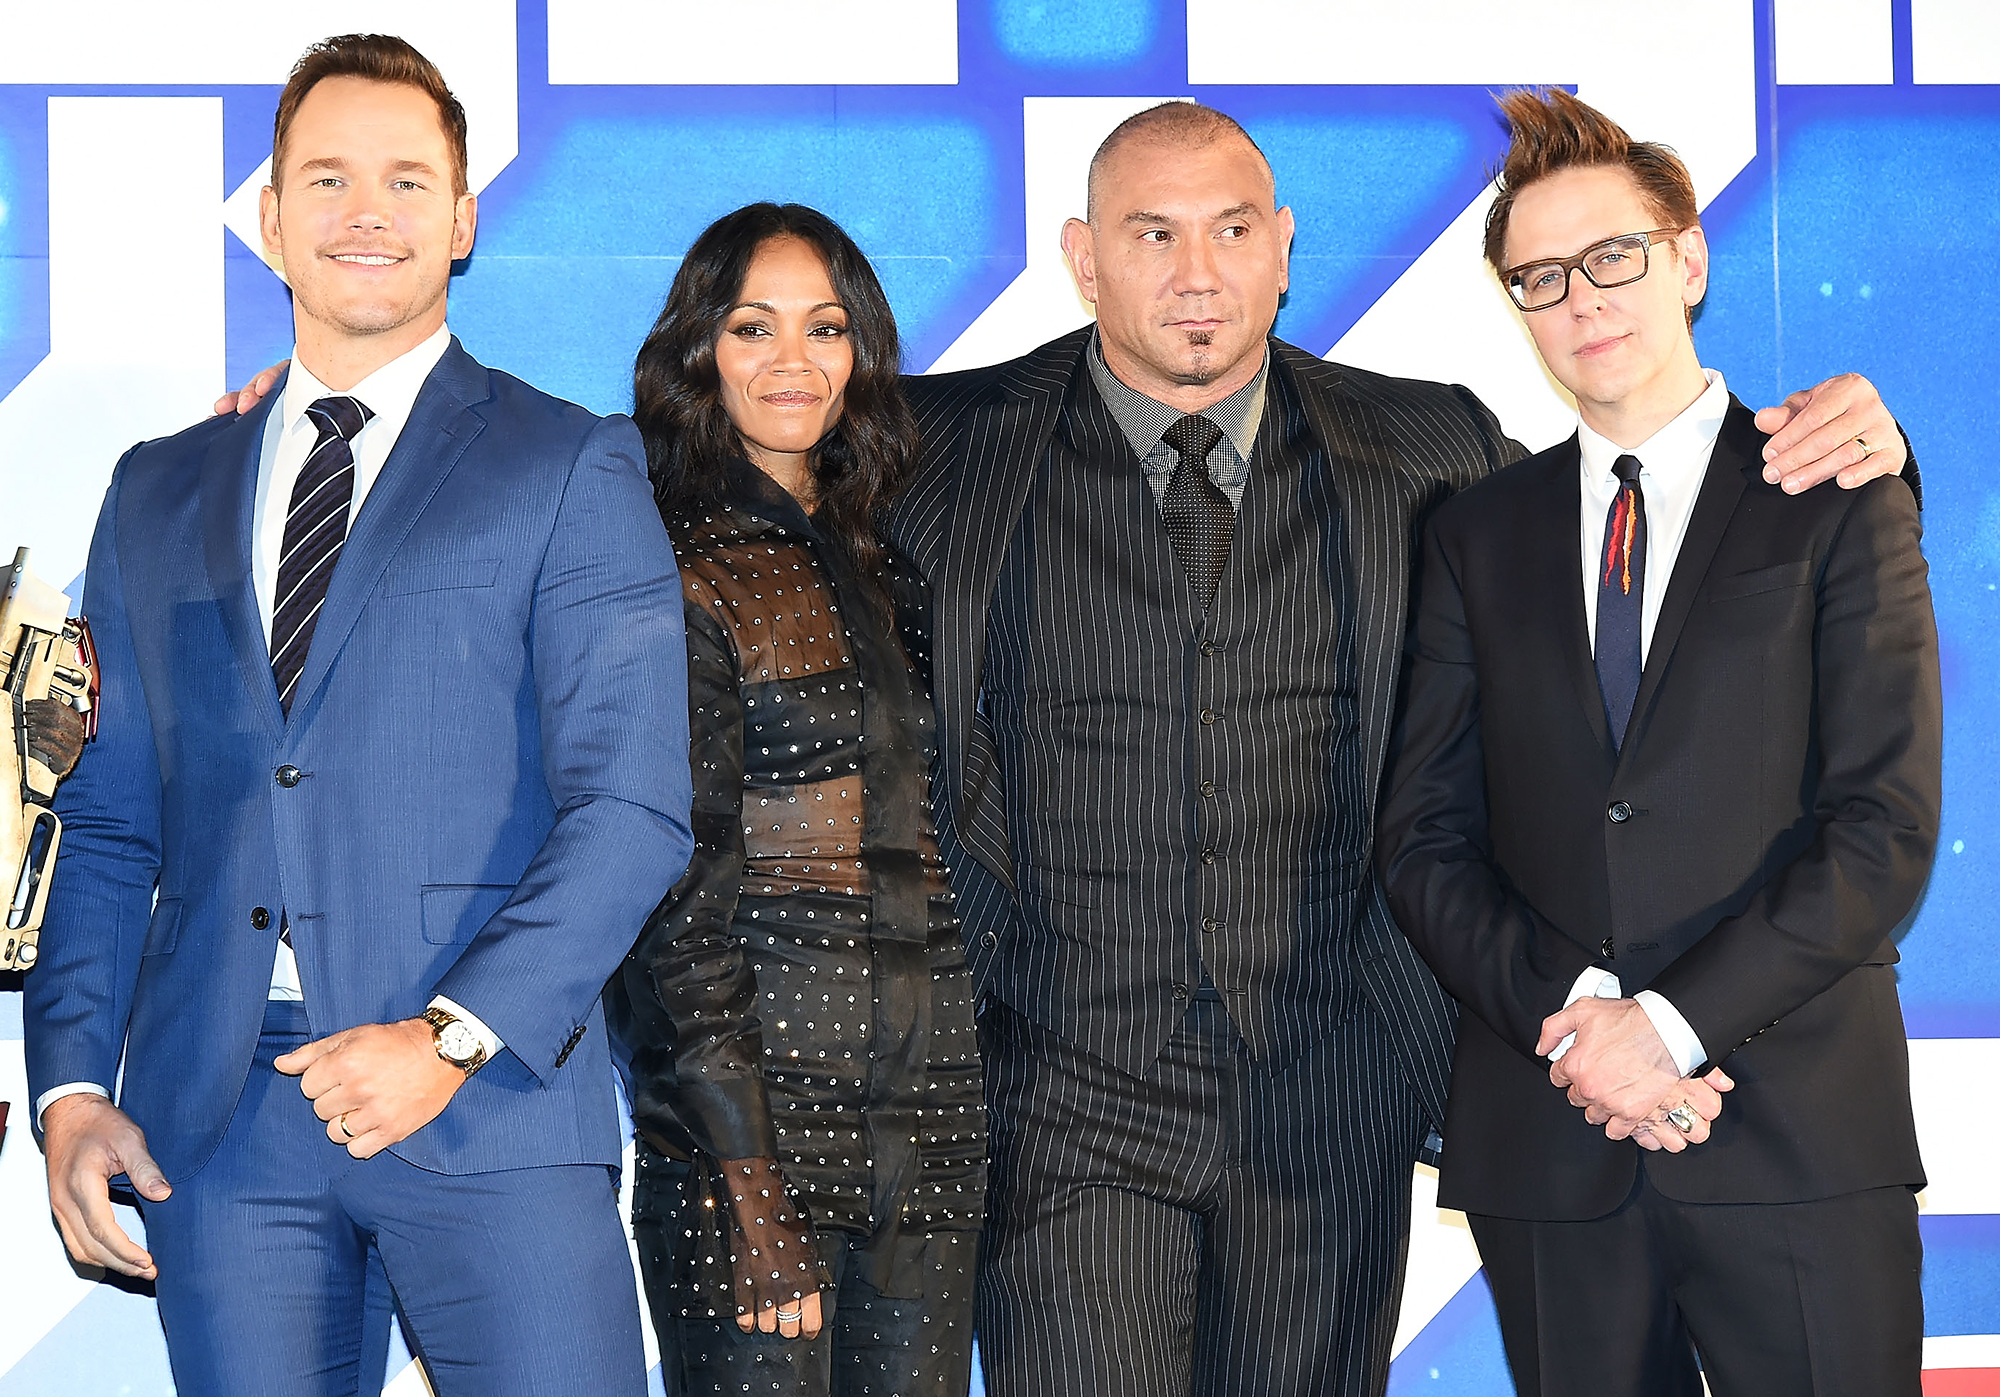 James Gunn Fired Chris Pratt Zoe Saldana Dave Bautista Speak Out